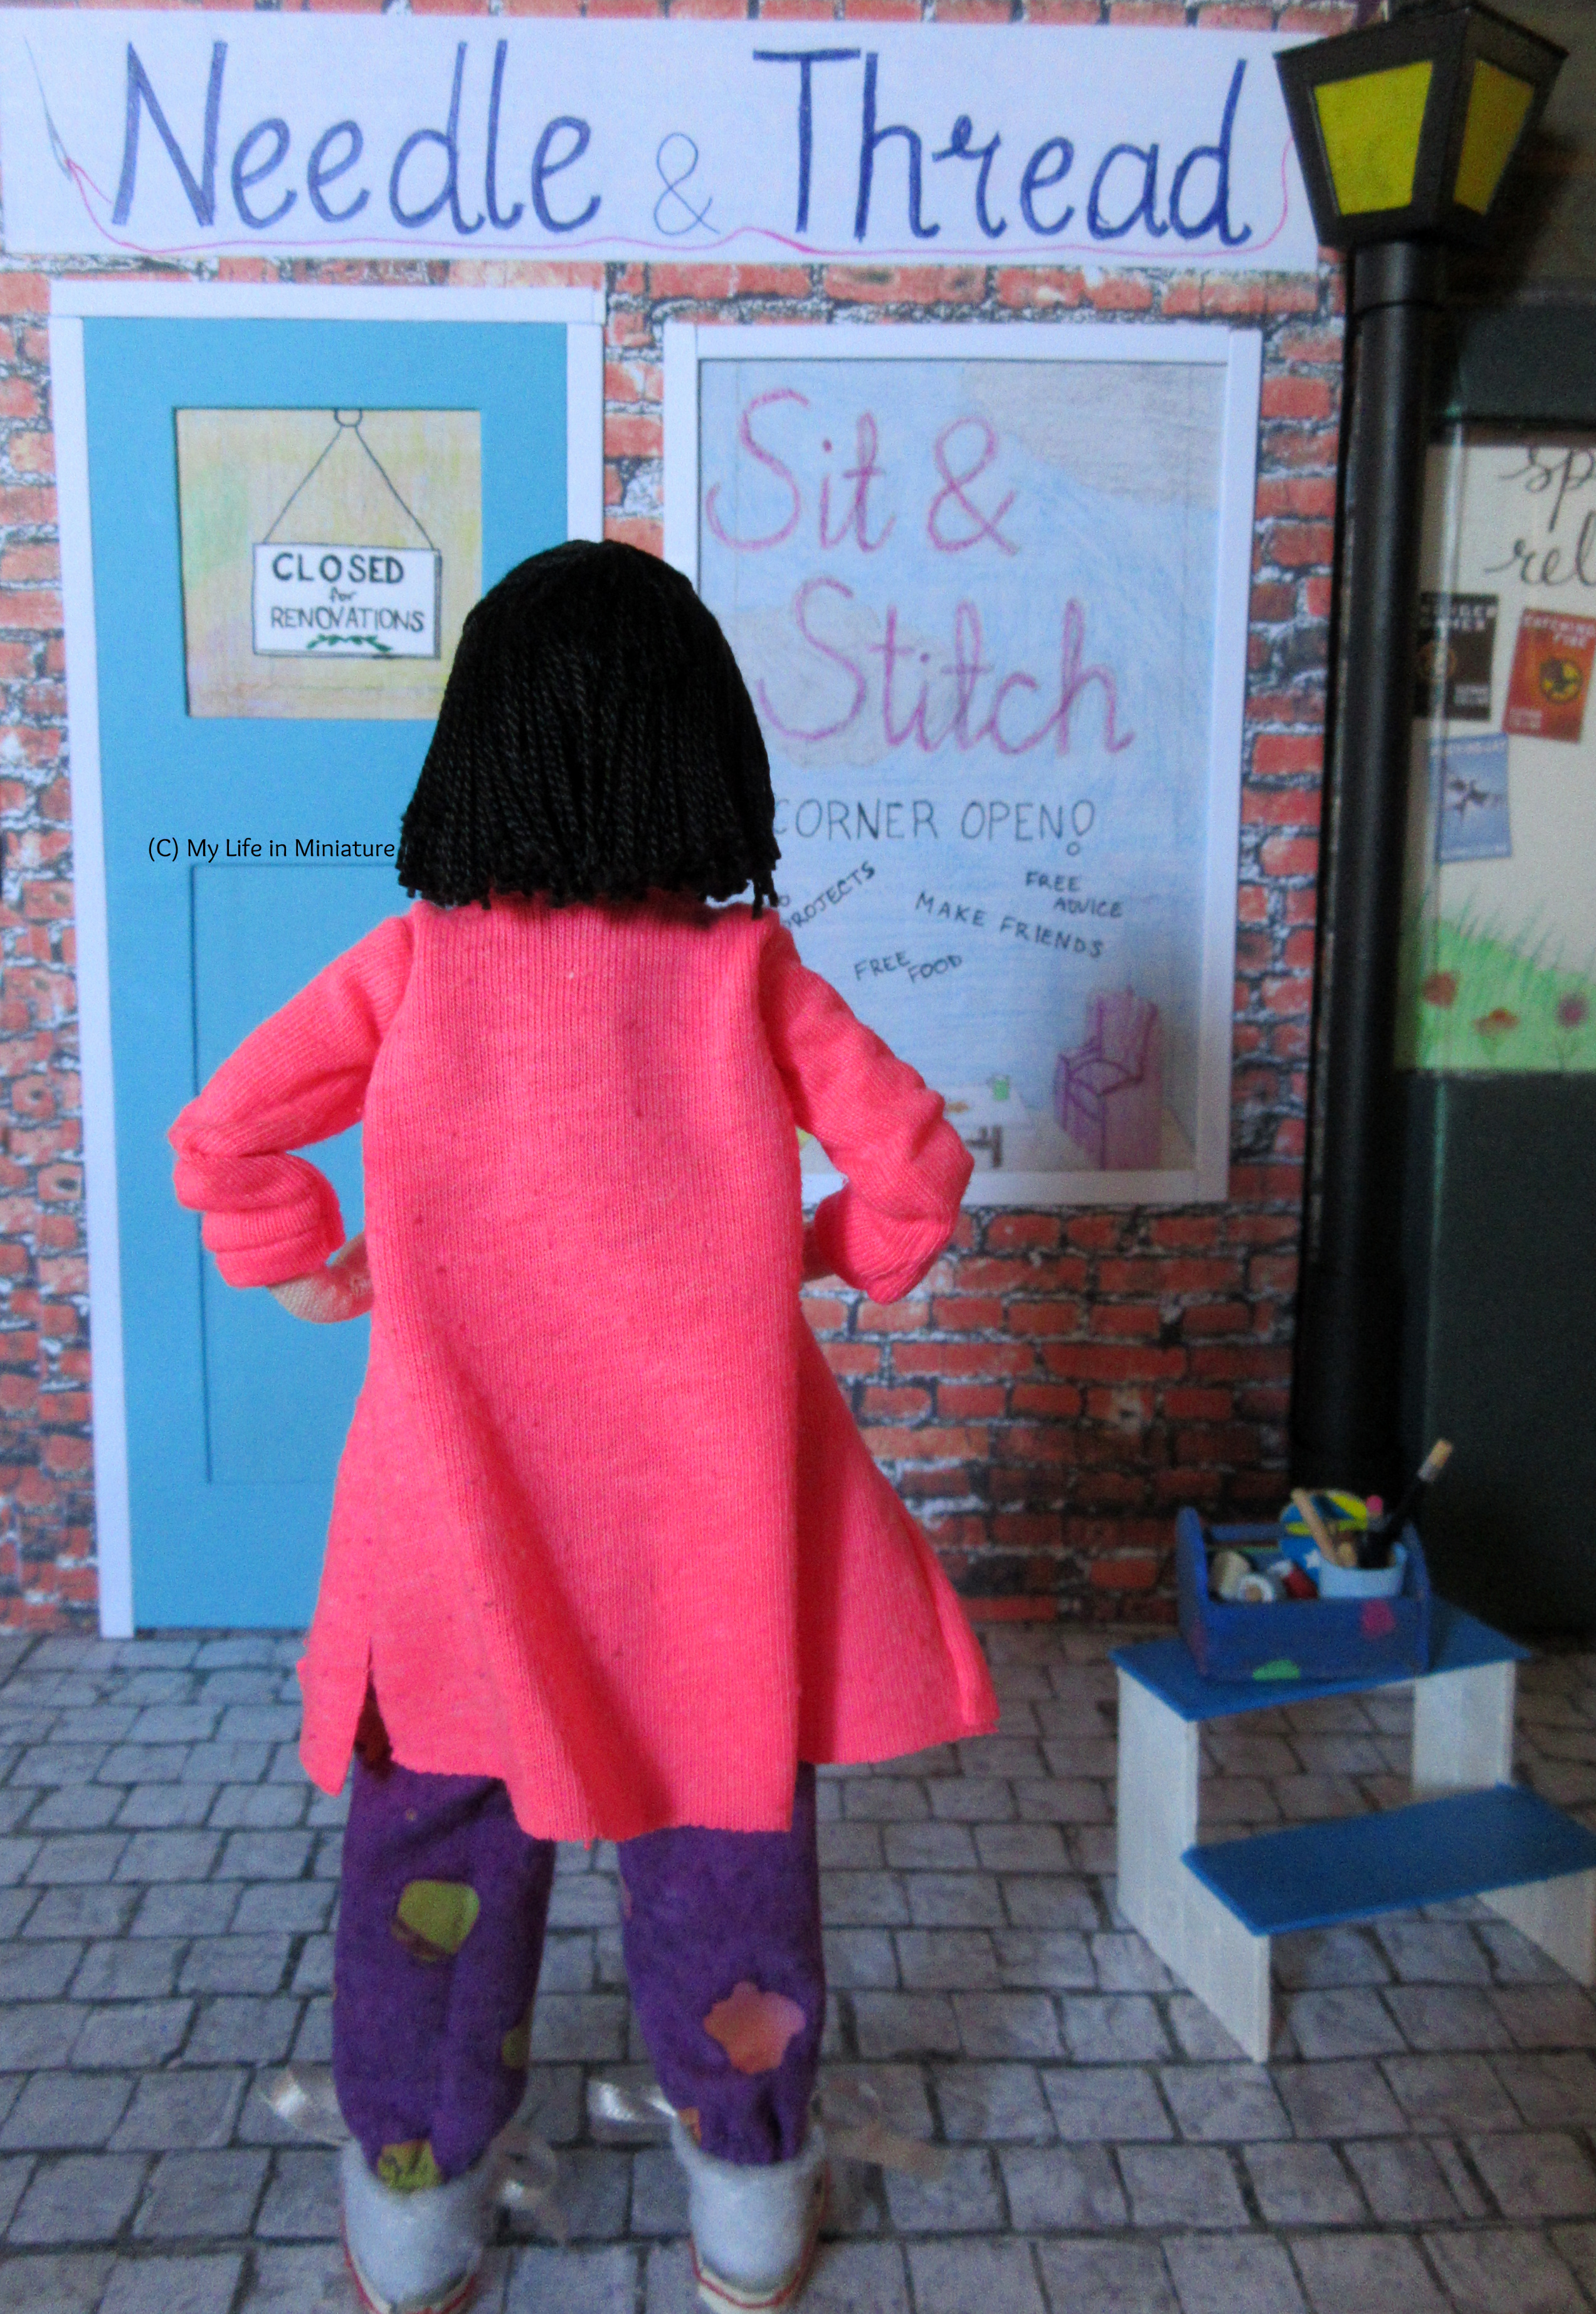 Tiffany stands in front of the front facade of Needle & Thread, back to the camera, hands on hips. A white sign across the top says 'Needle & Thread' in navy, there is a blue door to the left and a window display on the right. The window display says 'Sit & Stitch'.